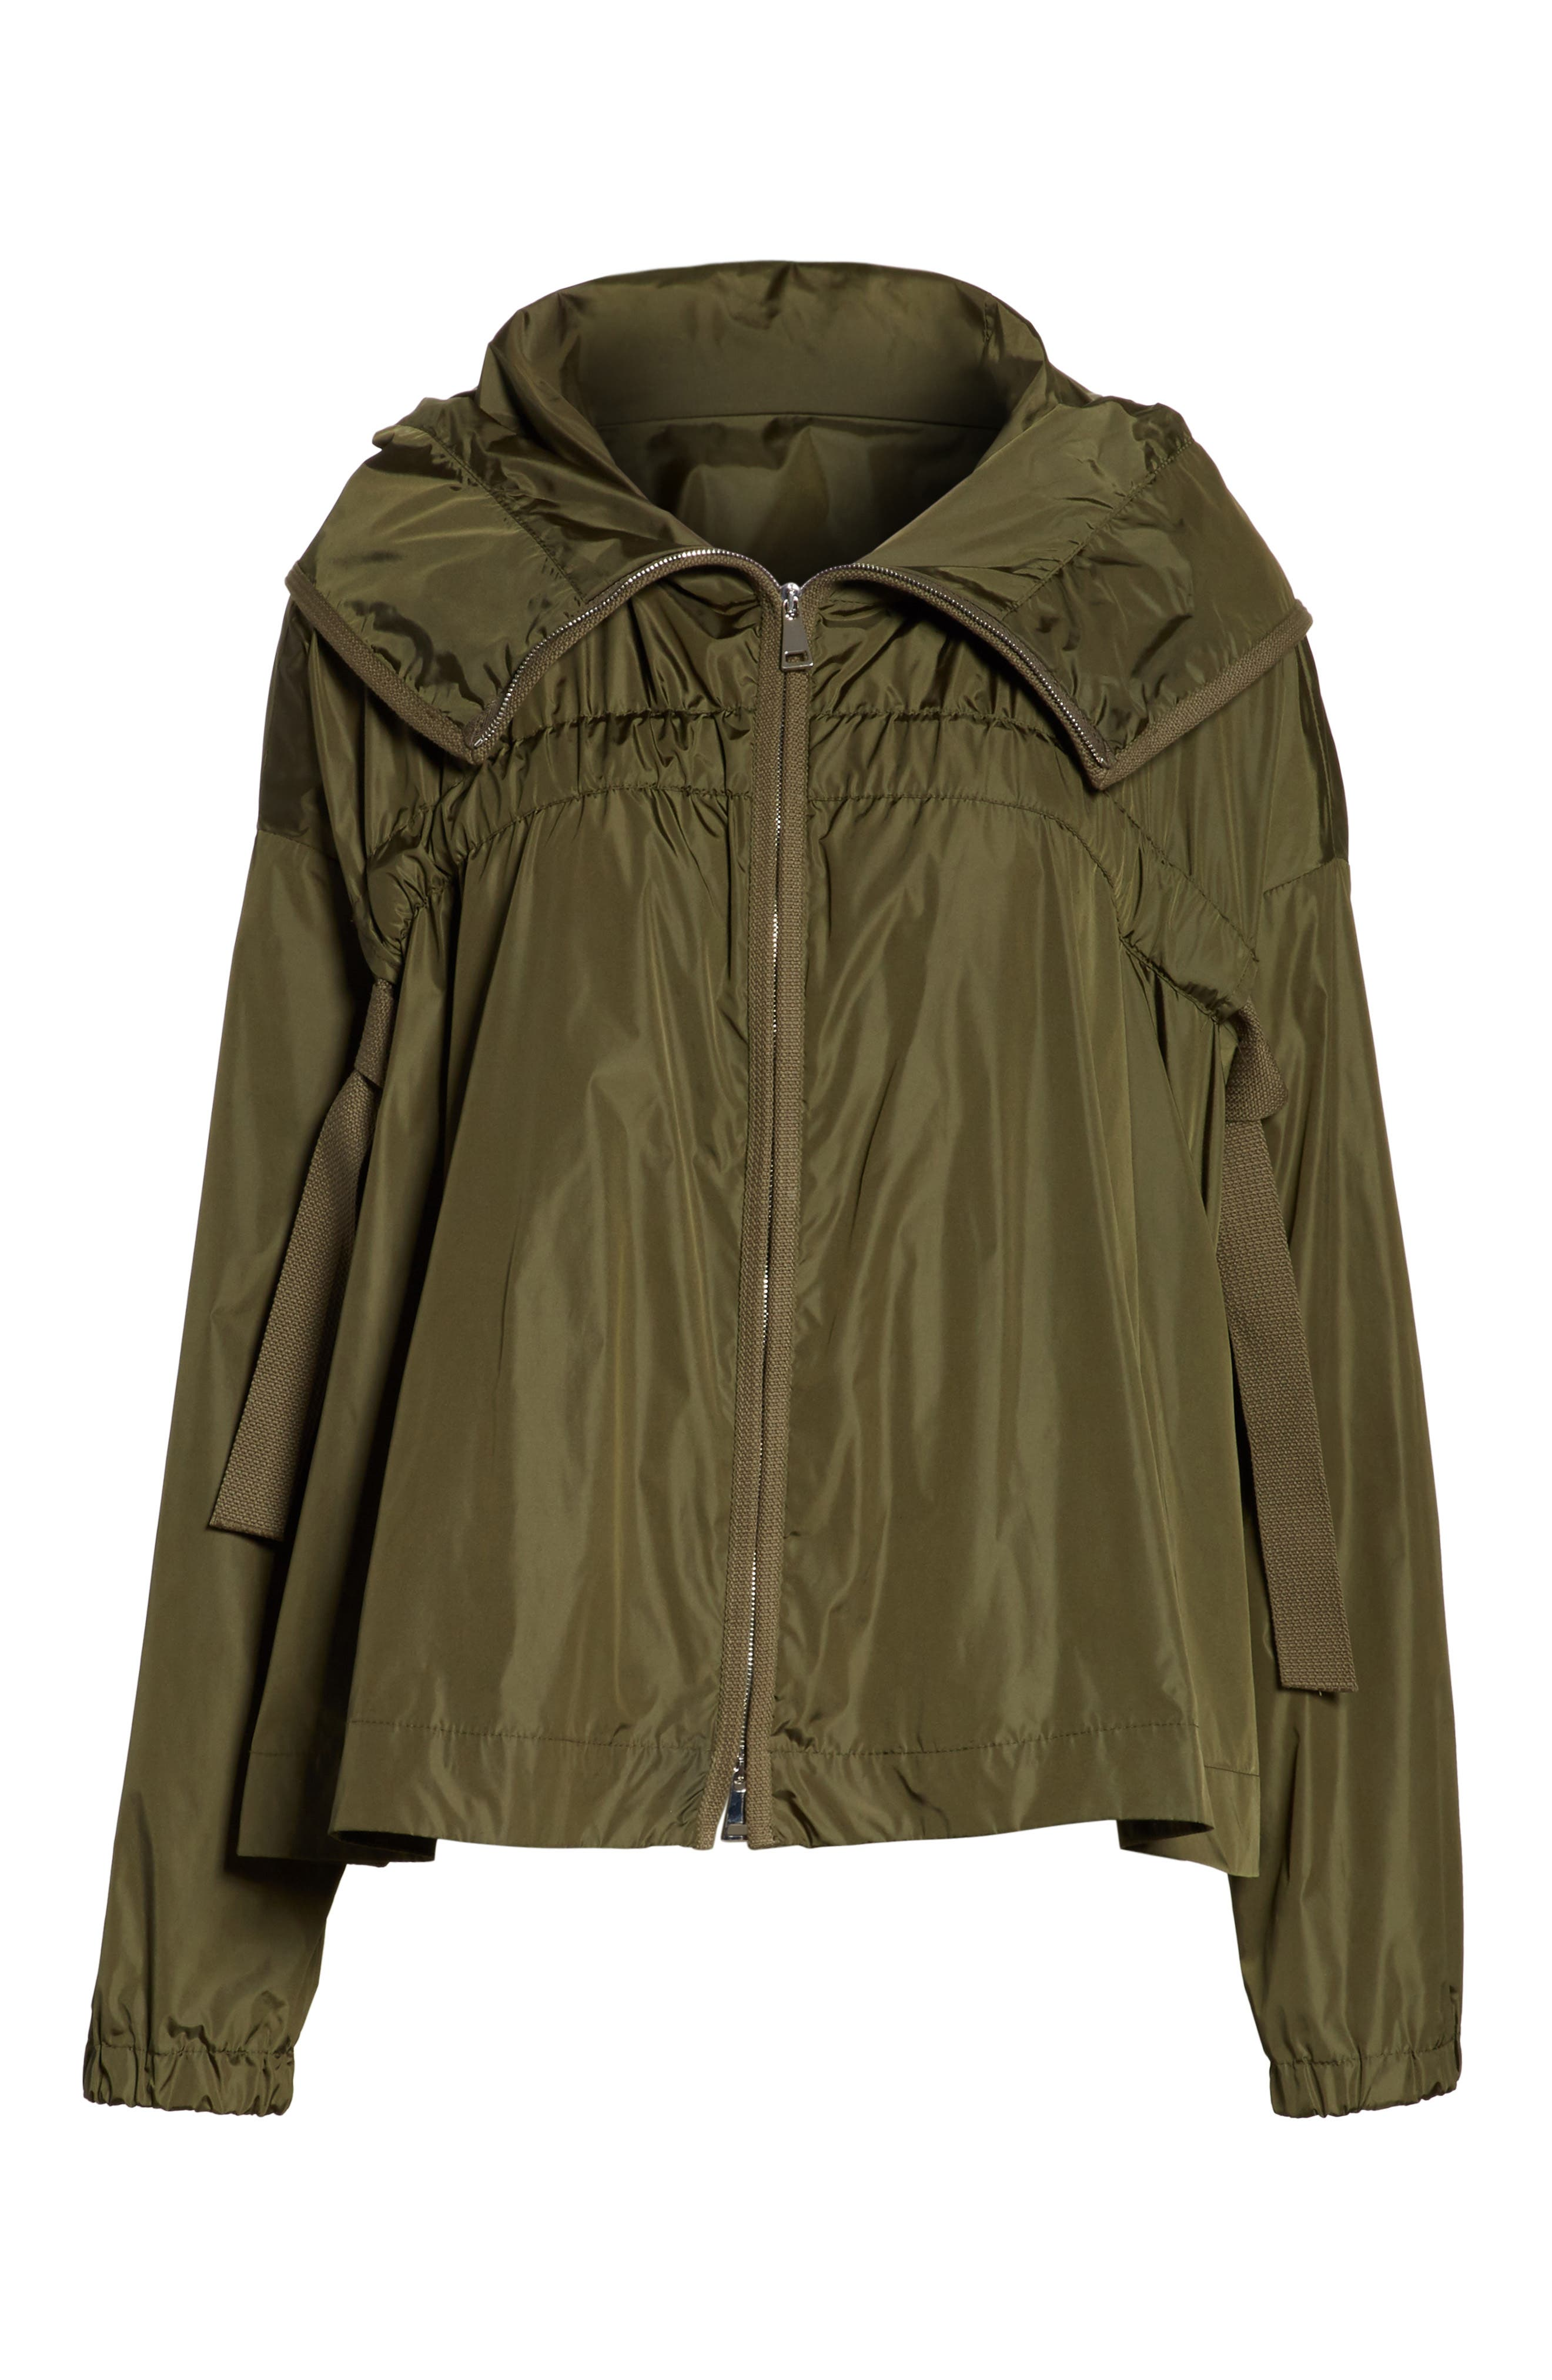 Lune Water Resistant Swing Jacket,                             Alternate thumbnail 8, color,                             Olive